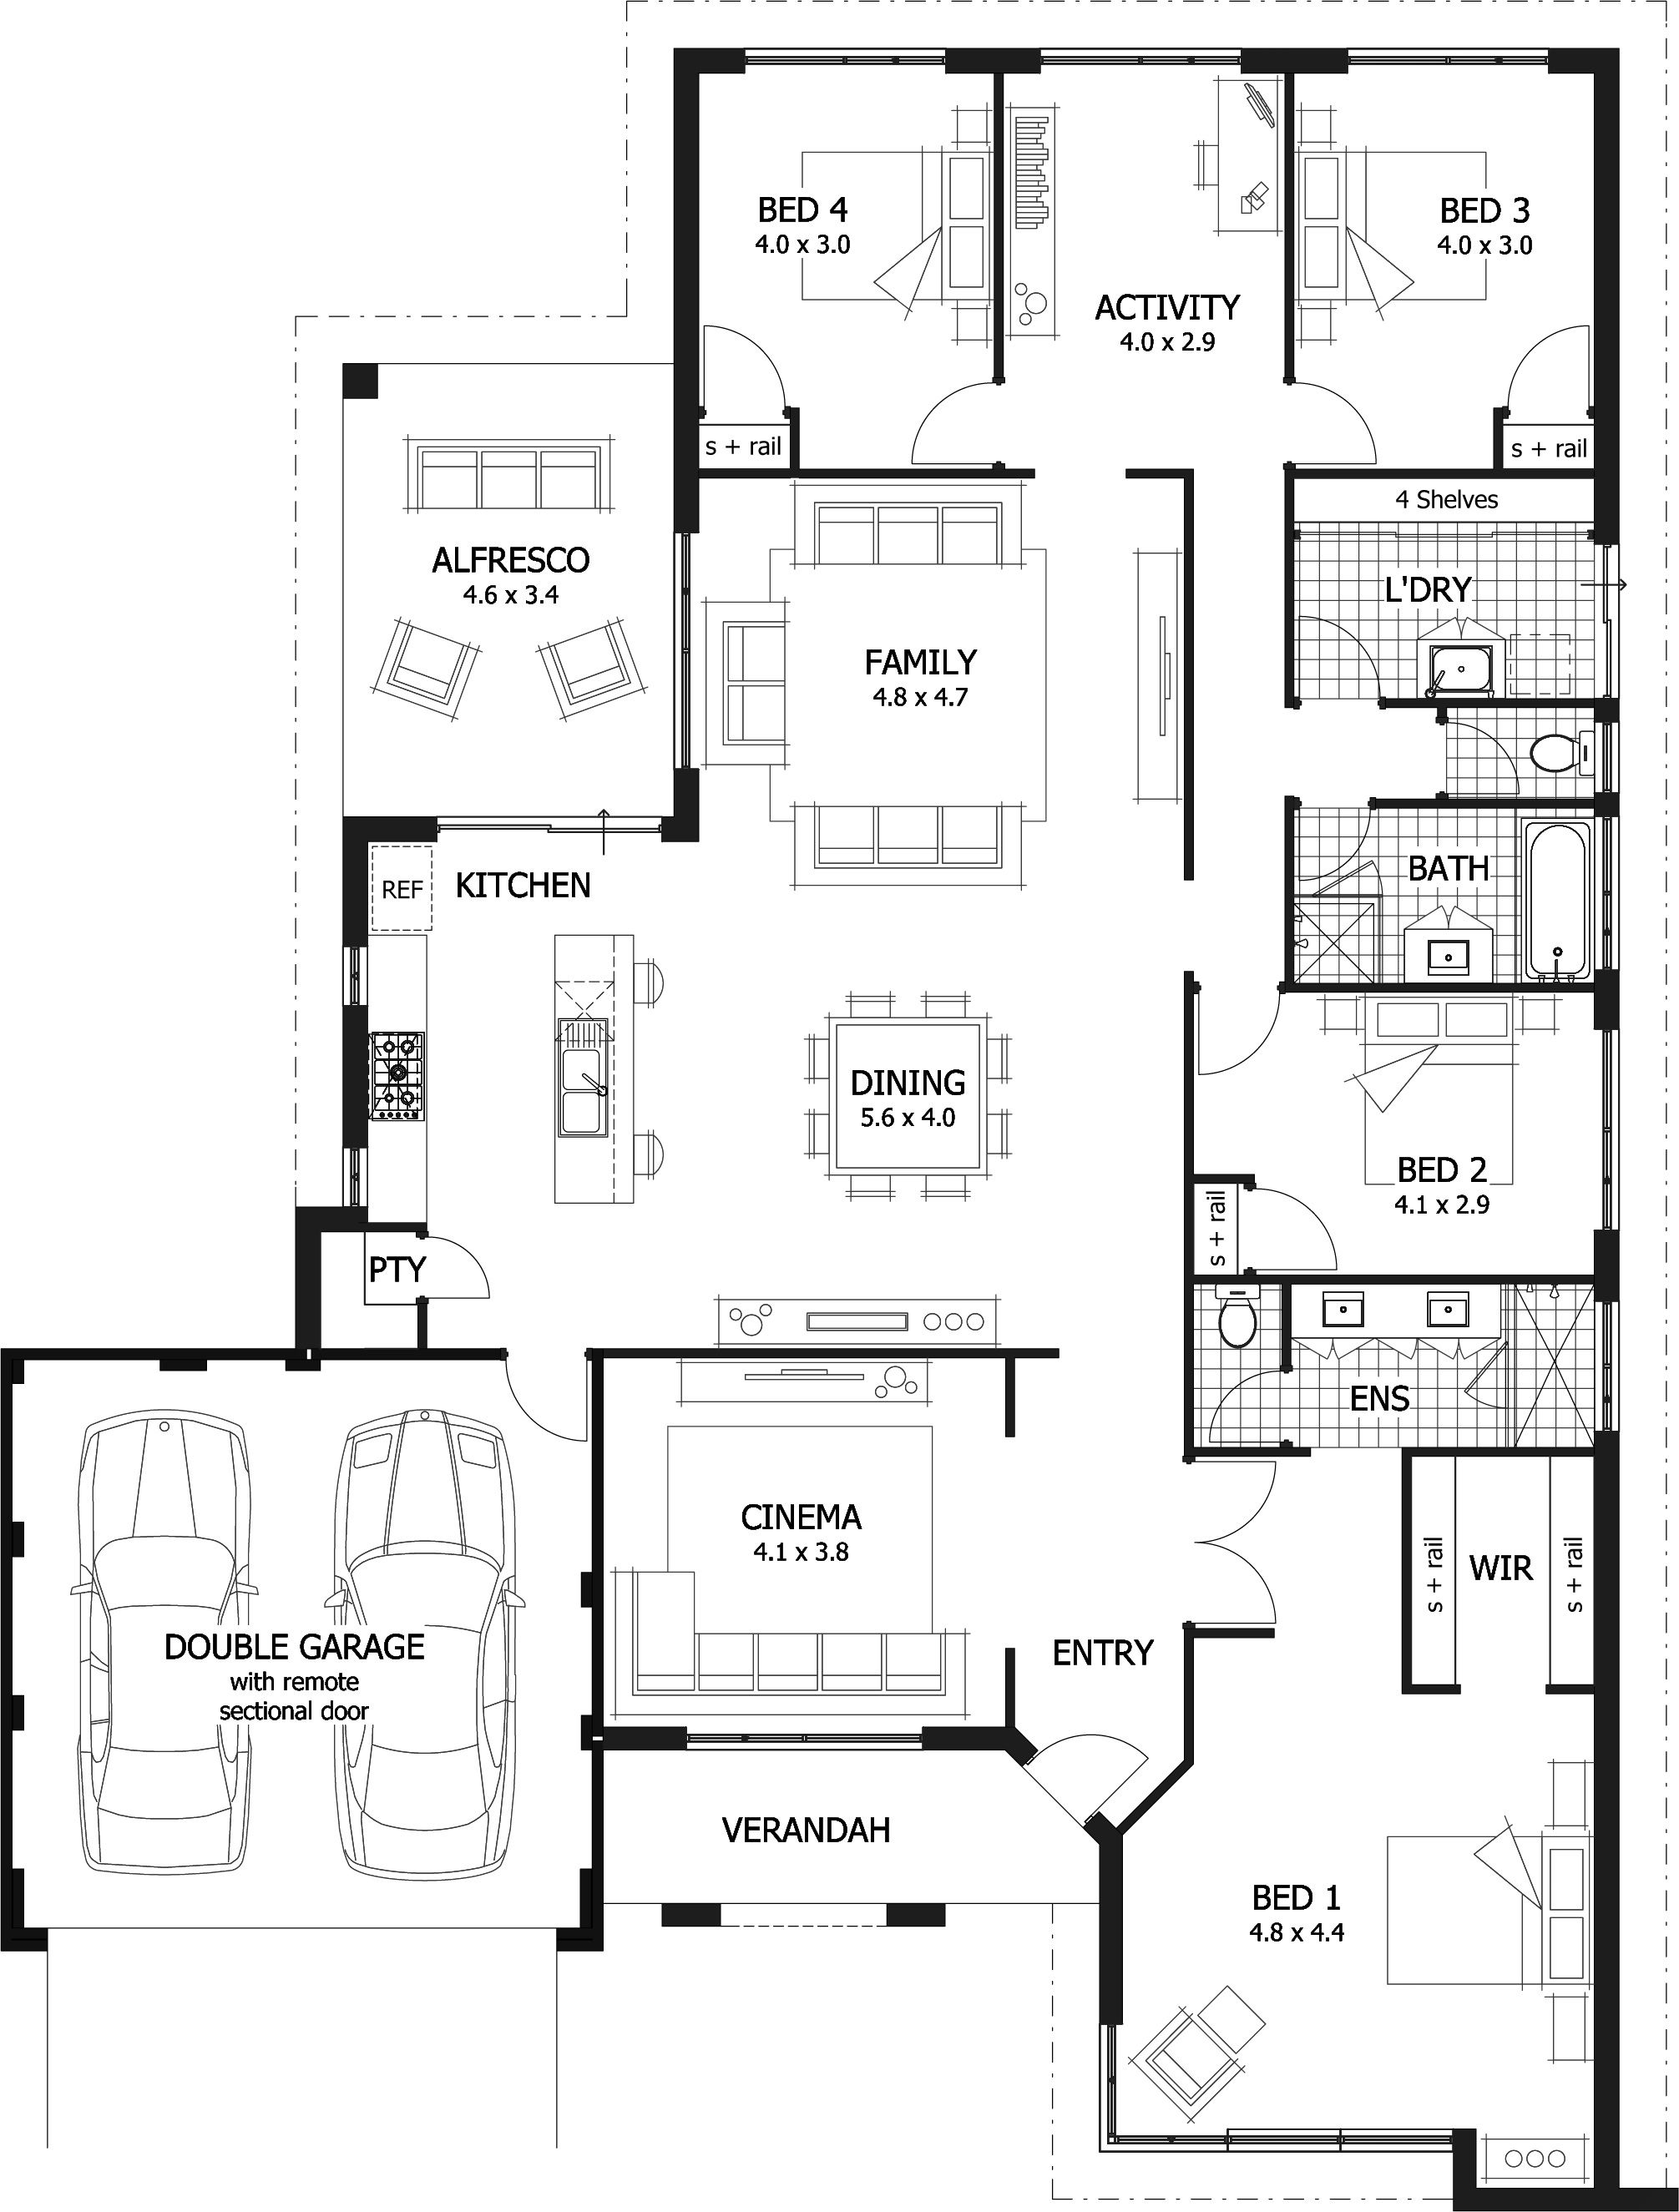 Find A 4 Bedroom Home That S Right For You From Our Current Range Of Home Designs And Plans Thes House Plans Australia 4 Bedroom House Plans Beach House Plans